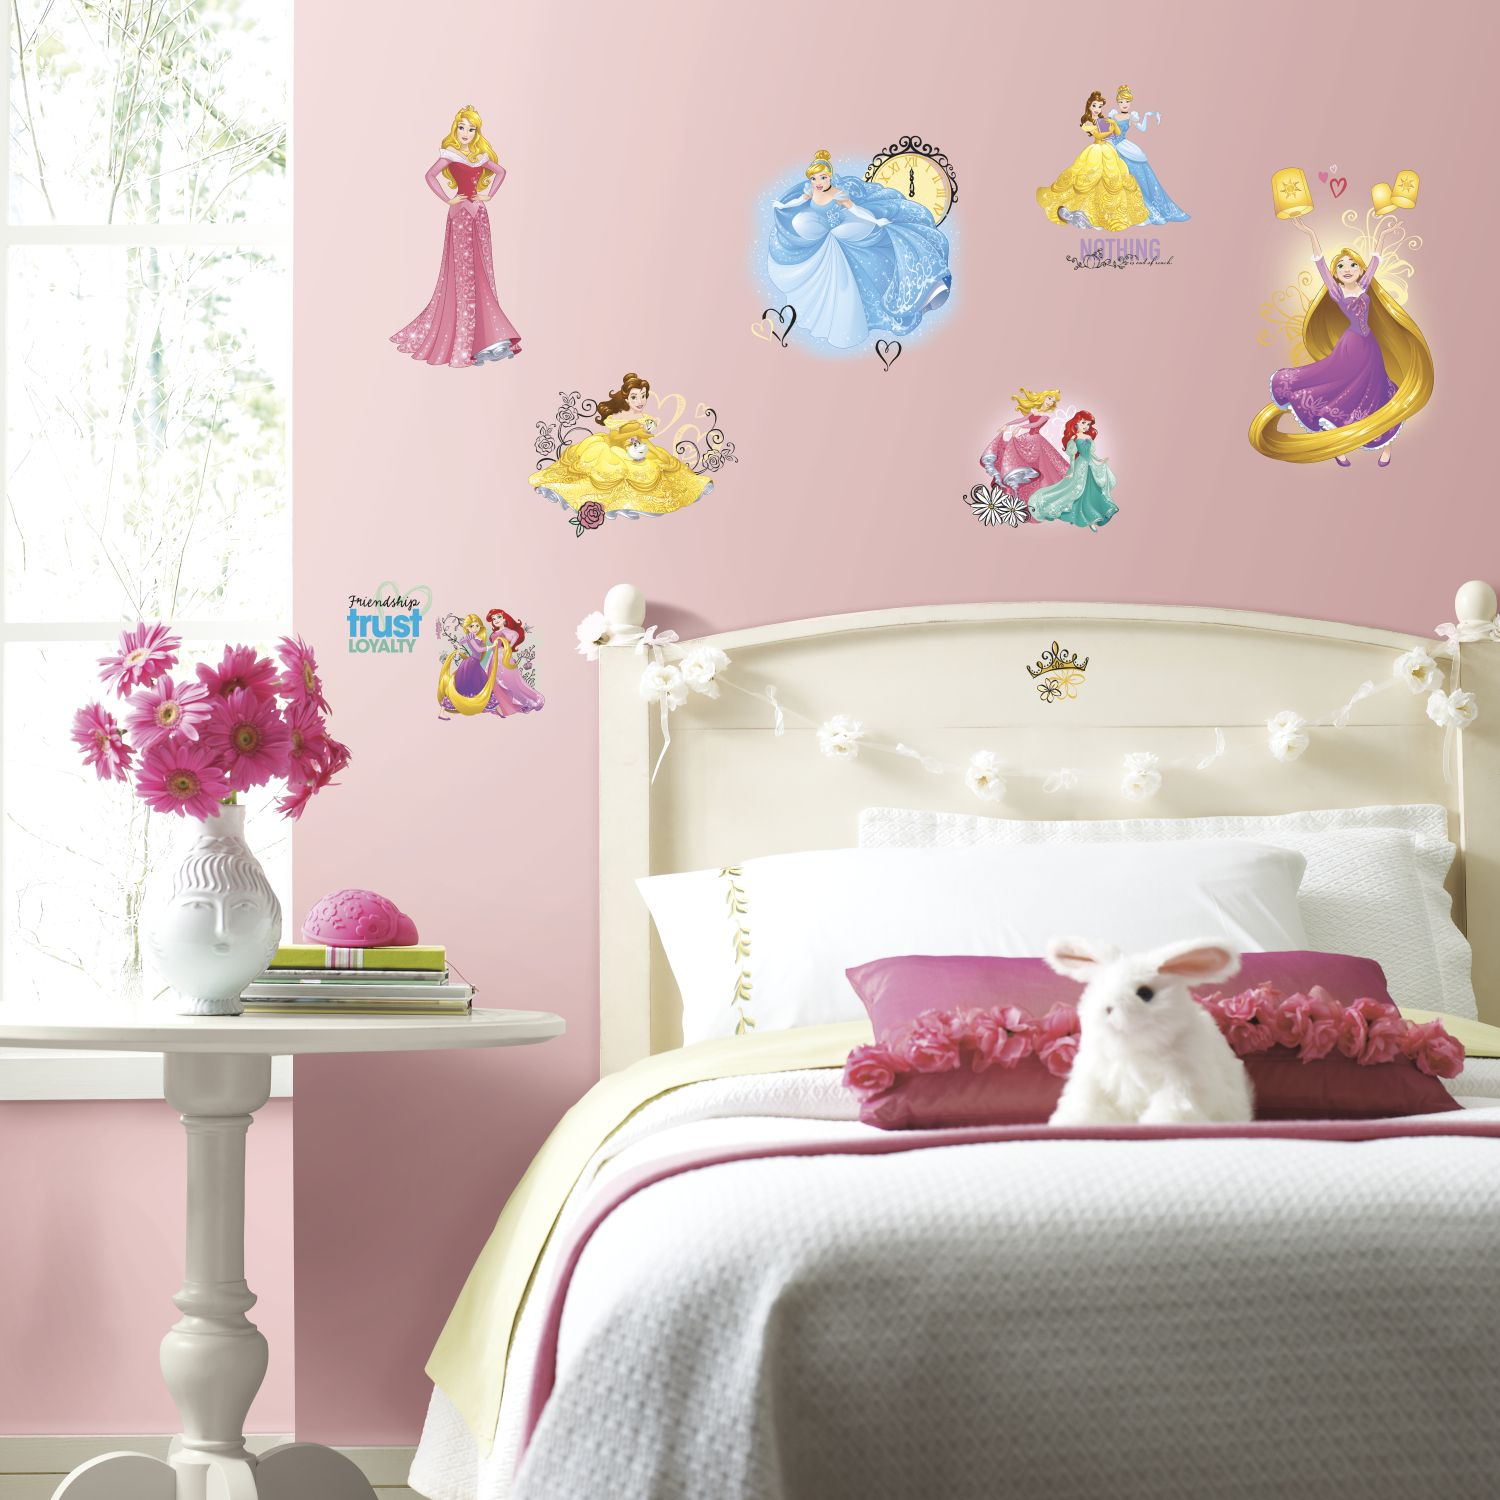 disney princess friendship adventures wall stickers. Black Bedroom Furniture Sets. Home Design Ideas